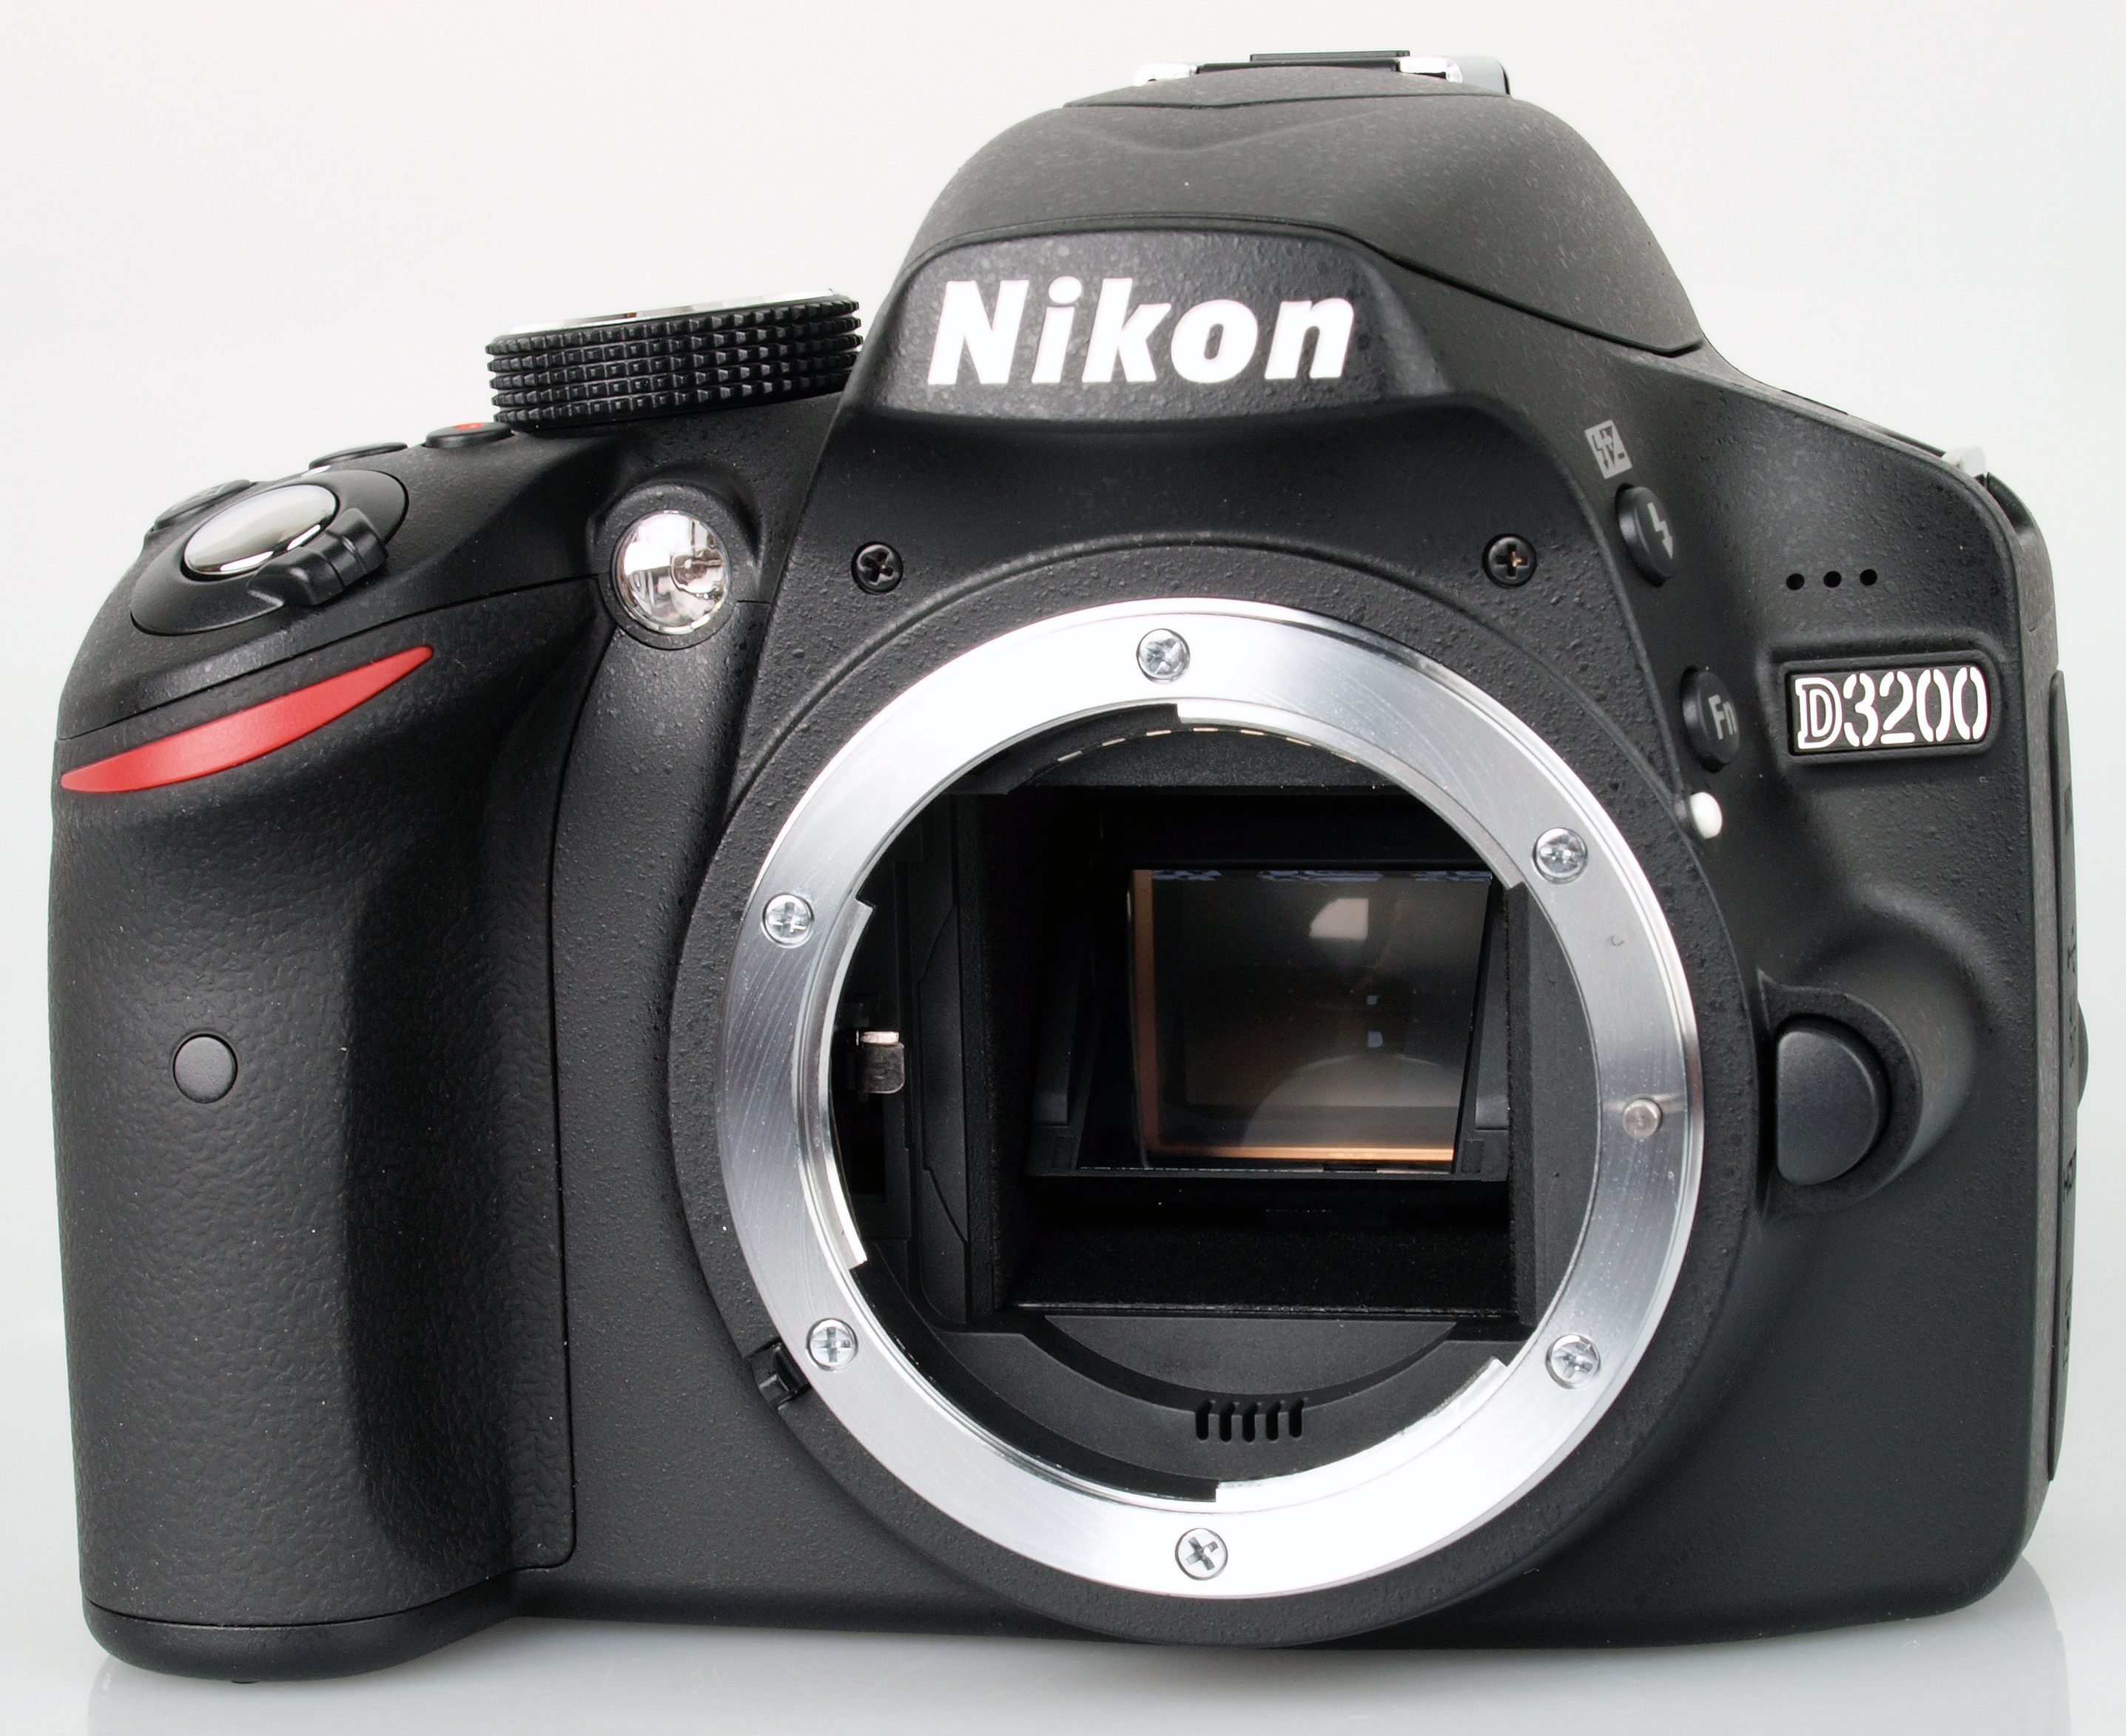 Nikon D3200 Dslr Review Where To Get Parts Diagram For A D5000 Slr With Dx Vr Afs